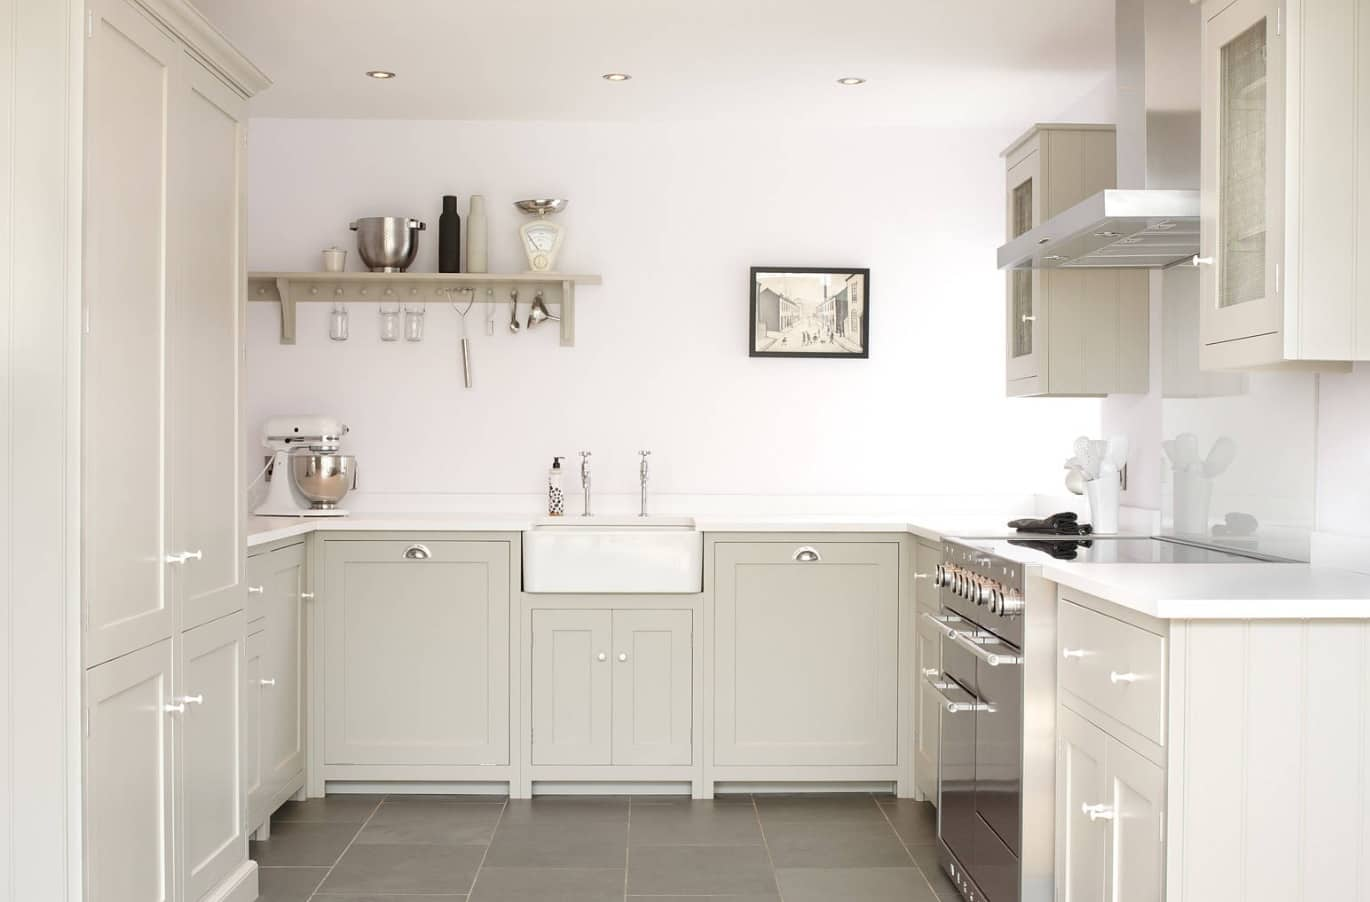 White and gray classic styled kitchen arranged with minimalist approach